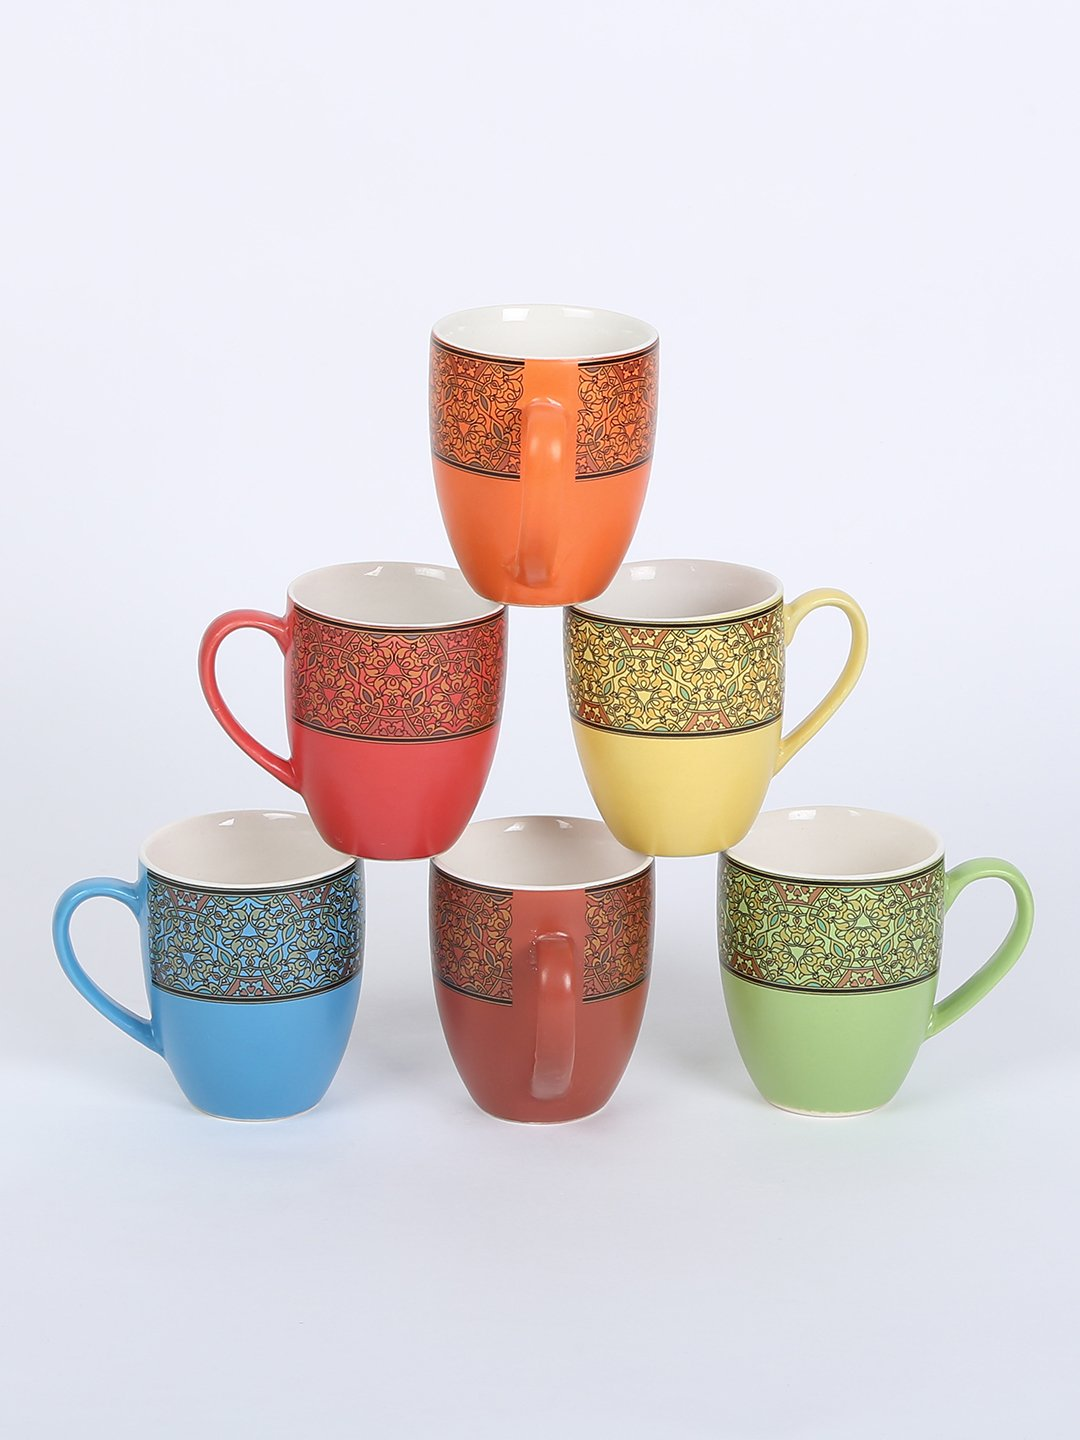 RANGRAGE Handcrafted Mugal Garden Tea/Coffee Mugs (Set of 6)